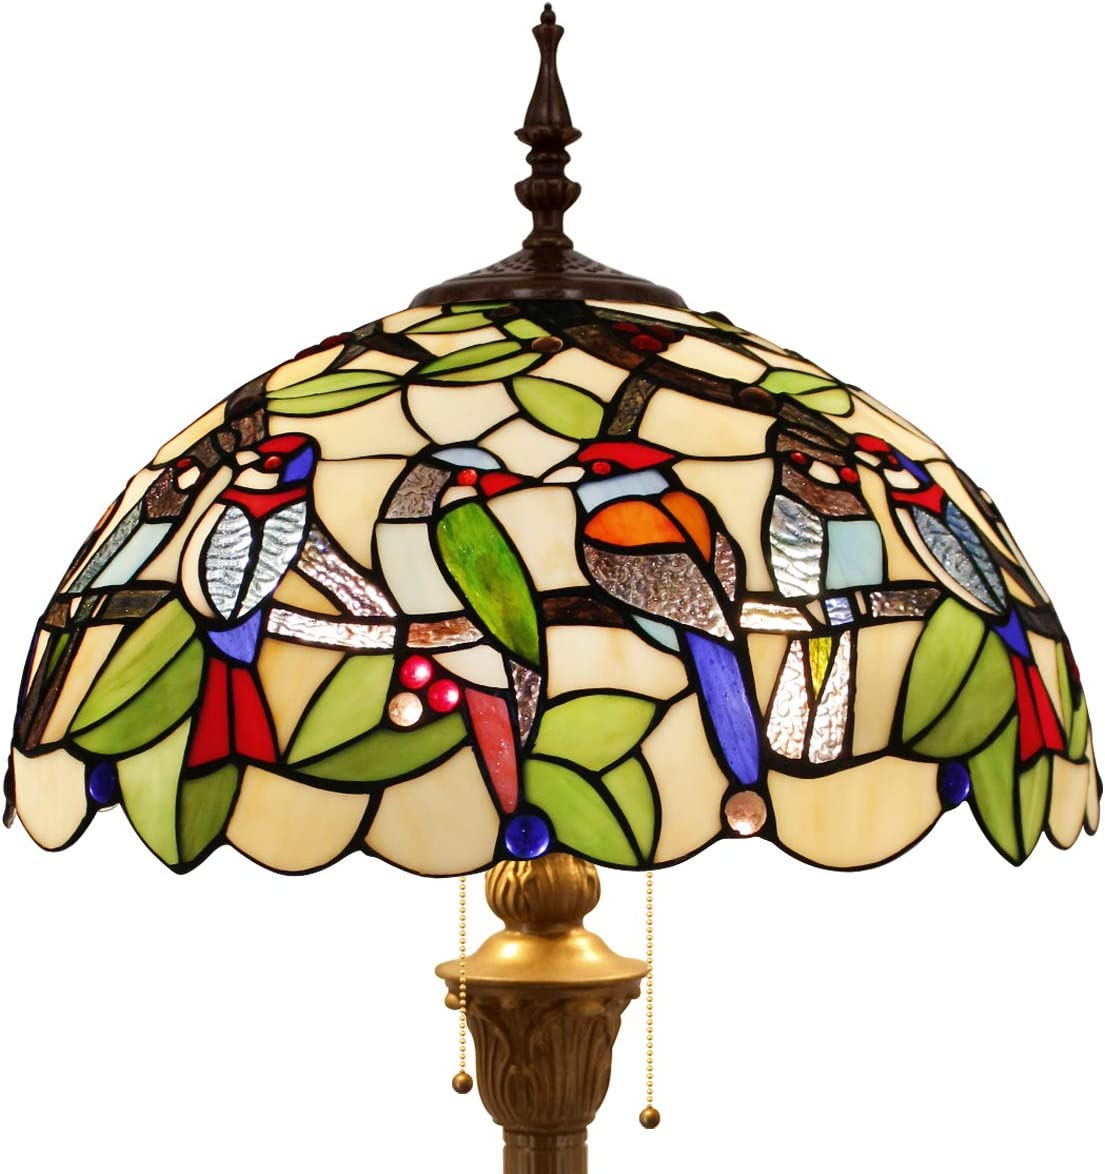 Tiffany Style Floor Standing Lamp 64 Inch Tall Double Birds Design Stained Glass Shade 2E26 Antique Base for Bedroom Living Room Reading Lighting Coffee Table Art S805 WERFACTORY